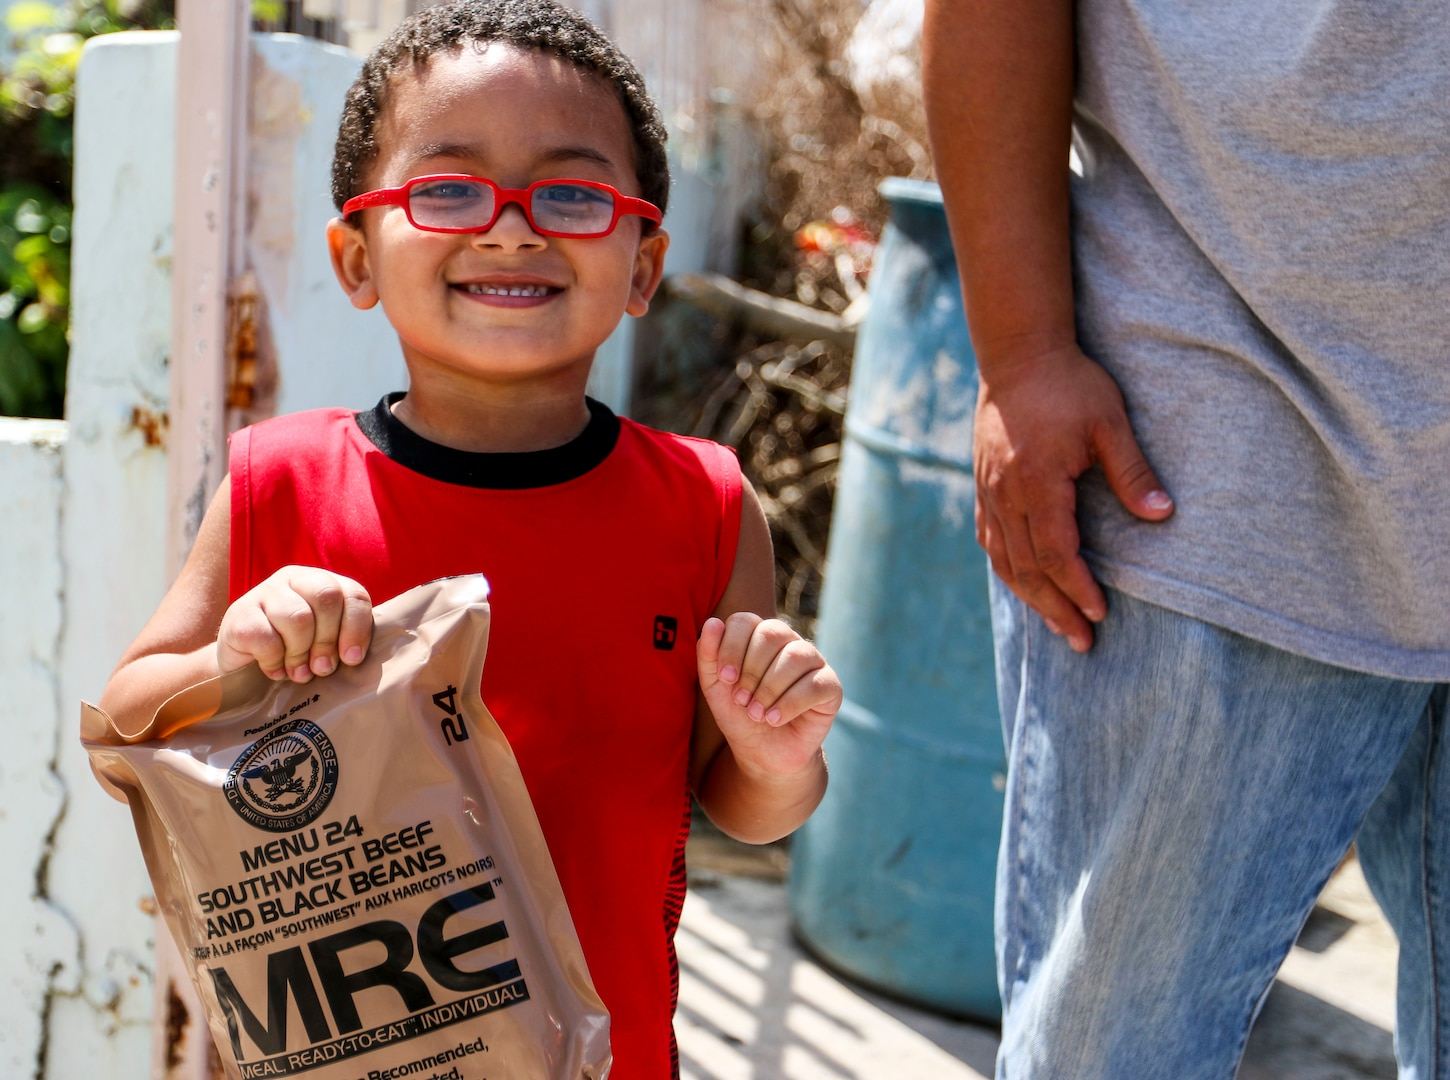 A boy smiles after receiving a packaged meal in San Juan, Puerto Rico.